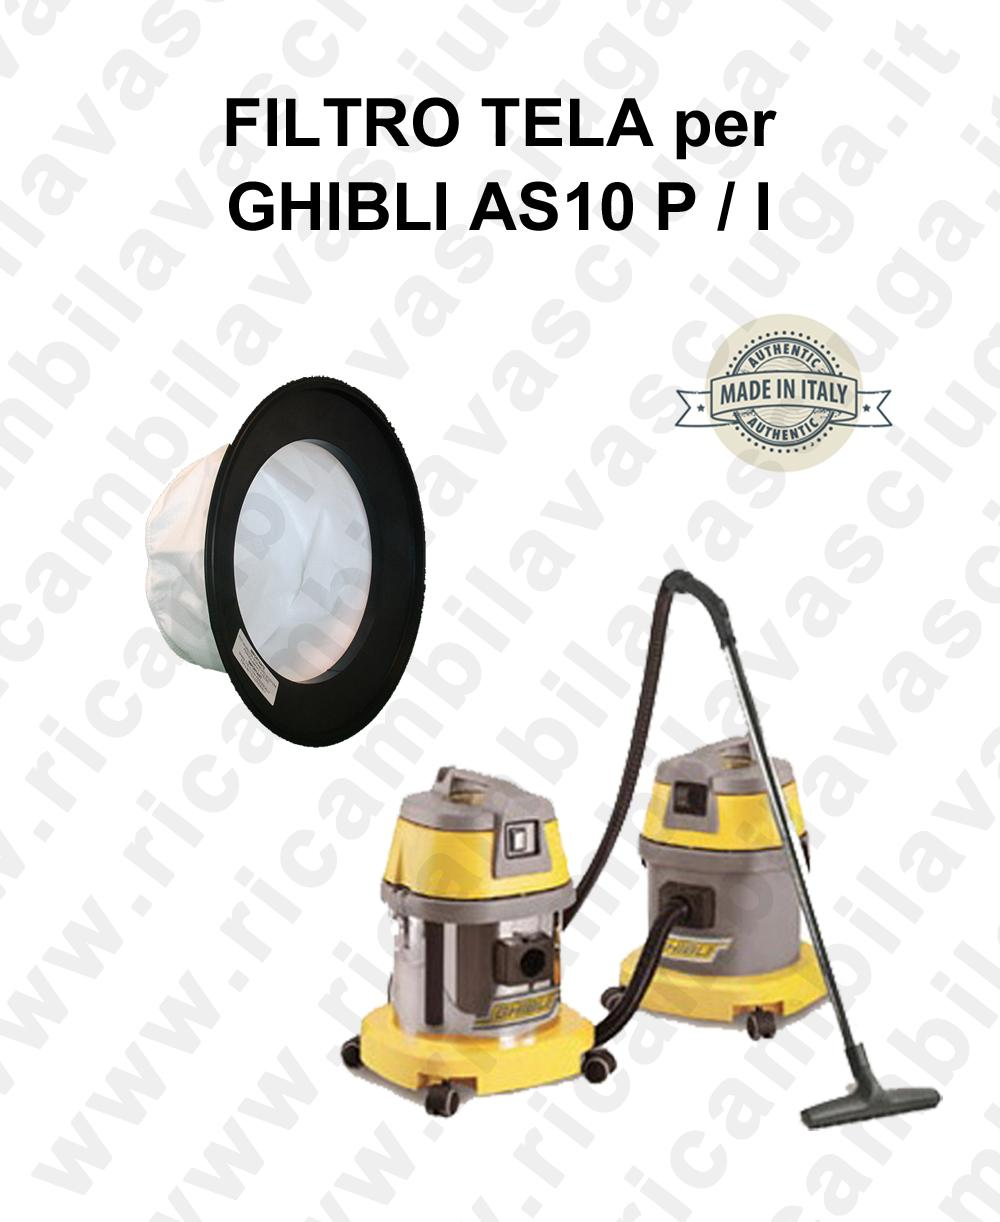 Canvas filter for vacuum cleaner GHIBLI model AS10 P / I